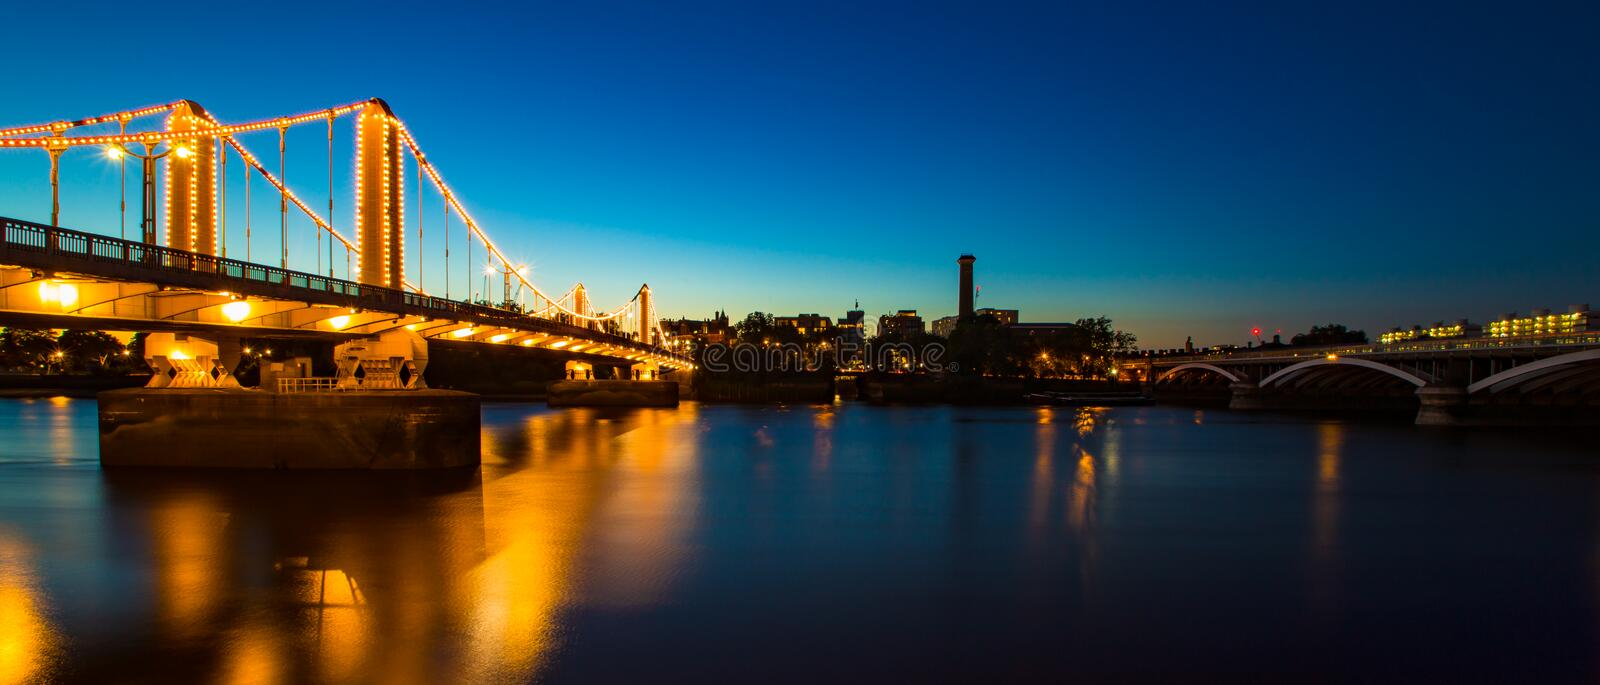 Beaux Chelsea Bridge et pont de chemin de fer par nuit Londres Angleterre photo libre de droits